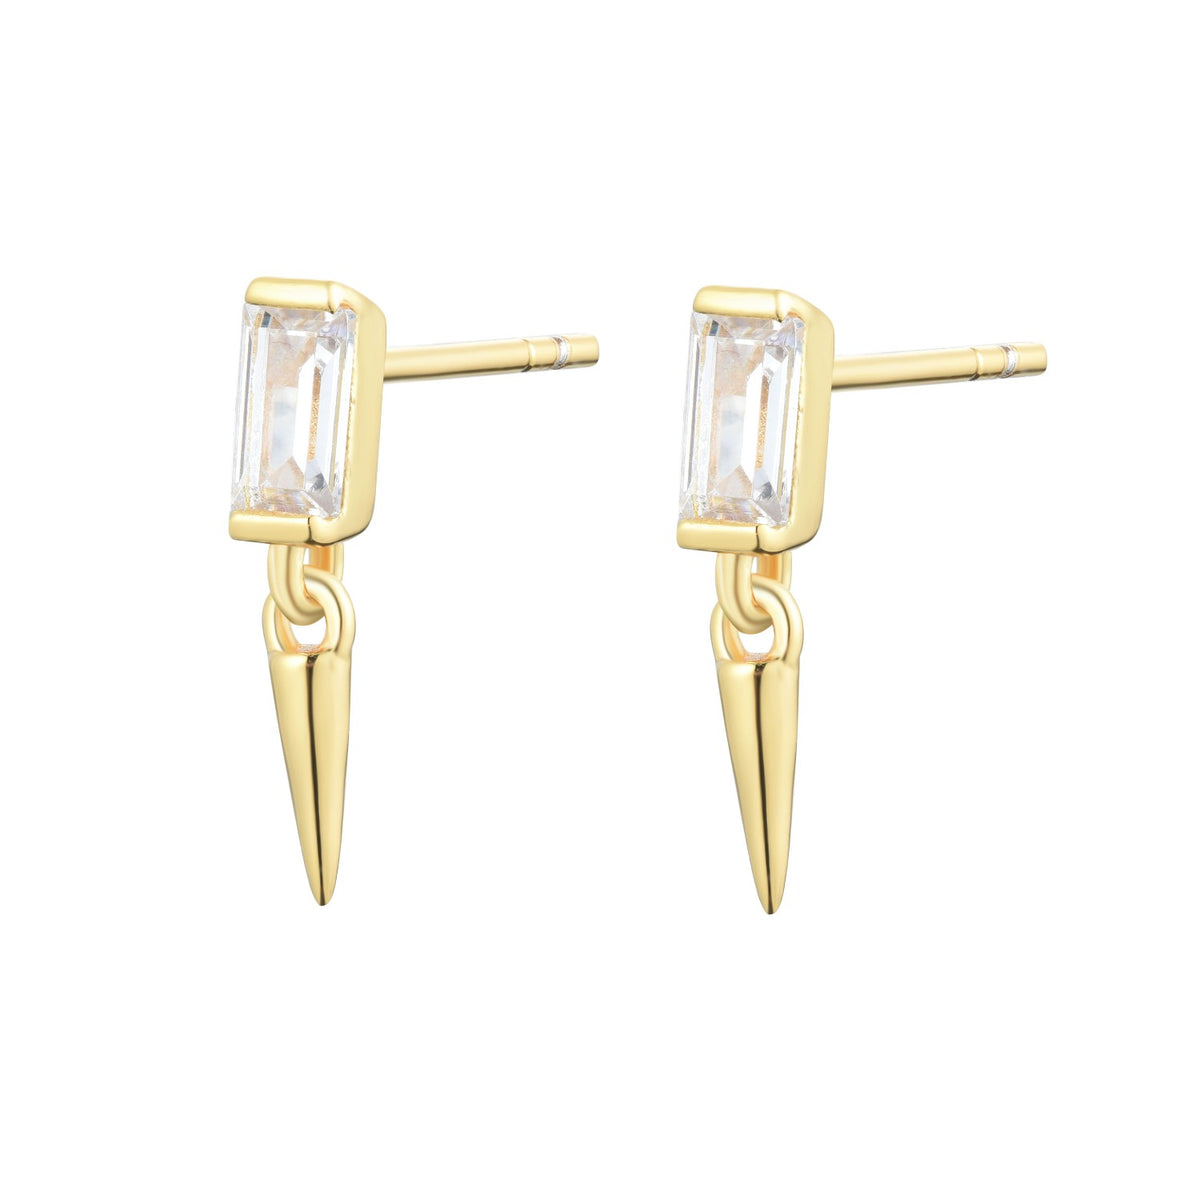 Fortuna | Padua Earrings | 925 Silver | White CZ | 18K Gold Plated